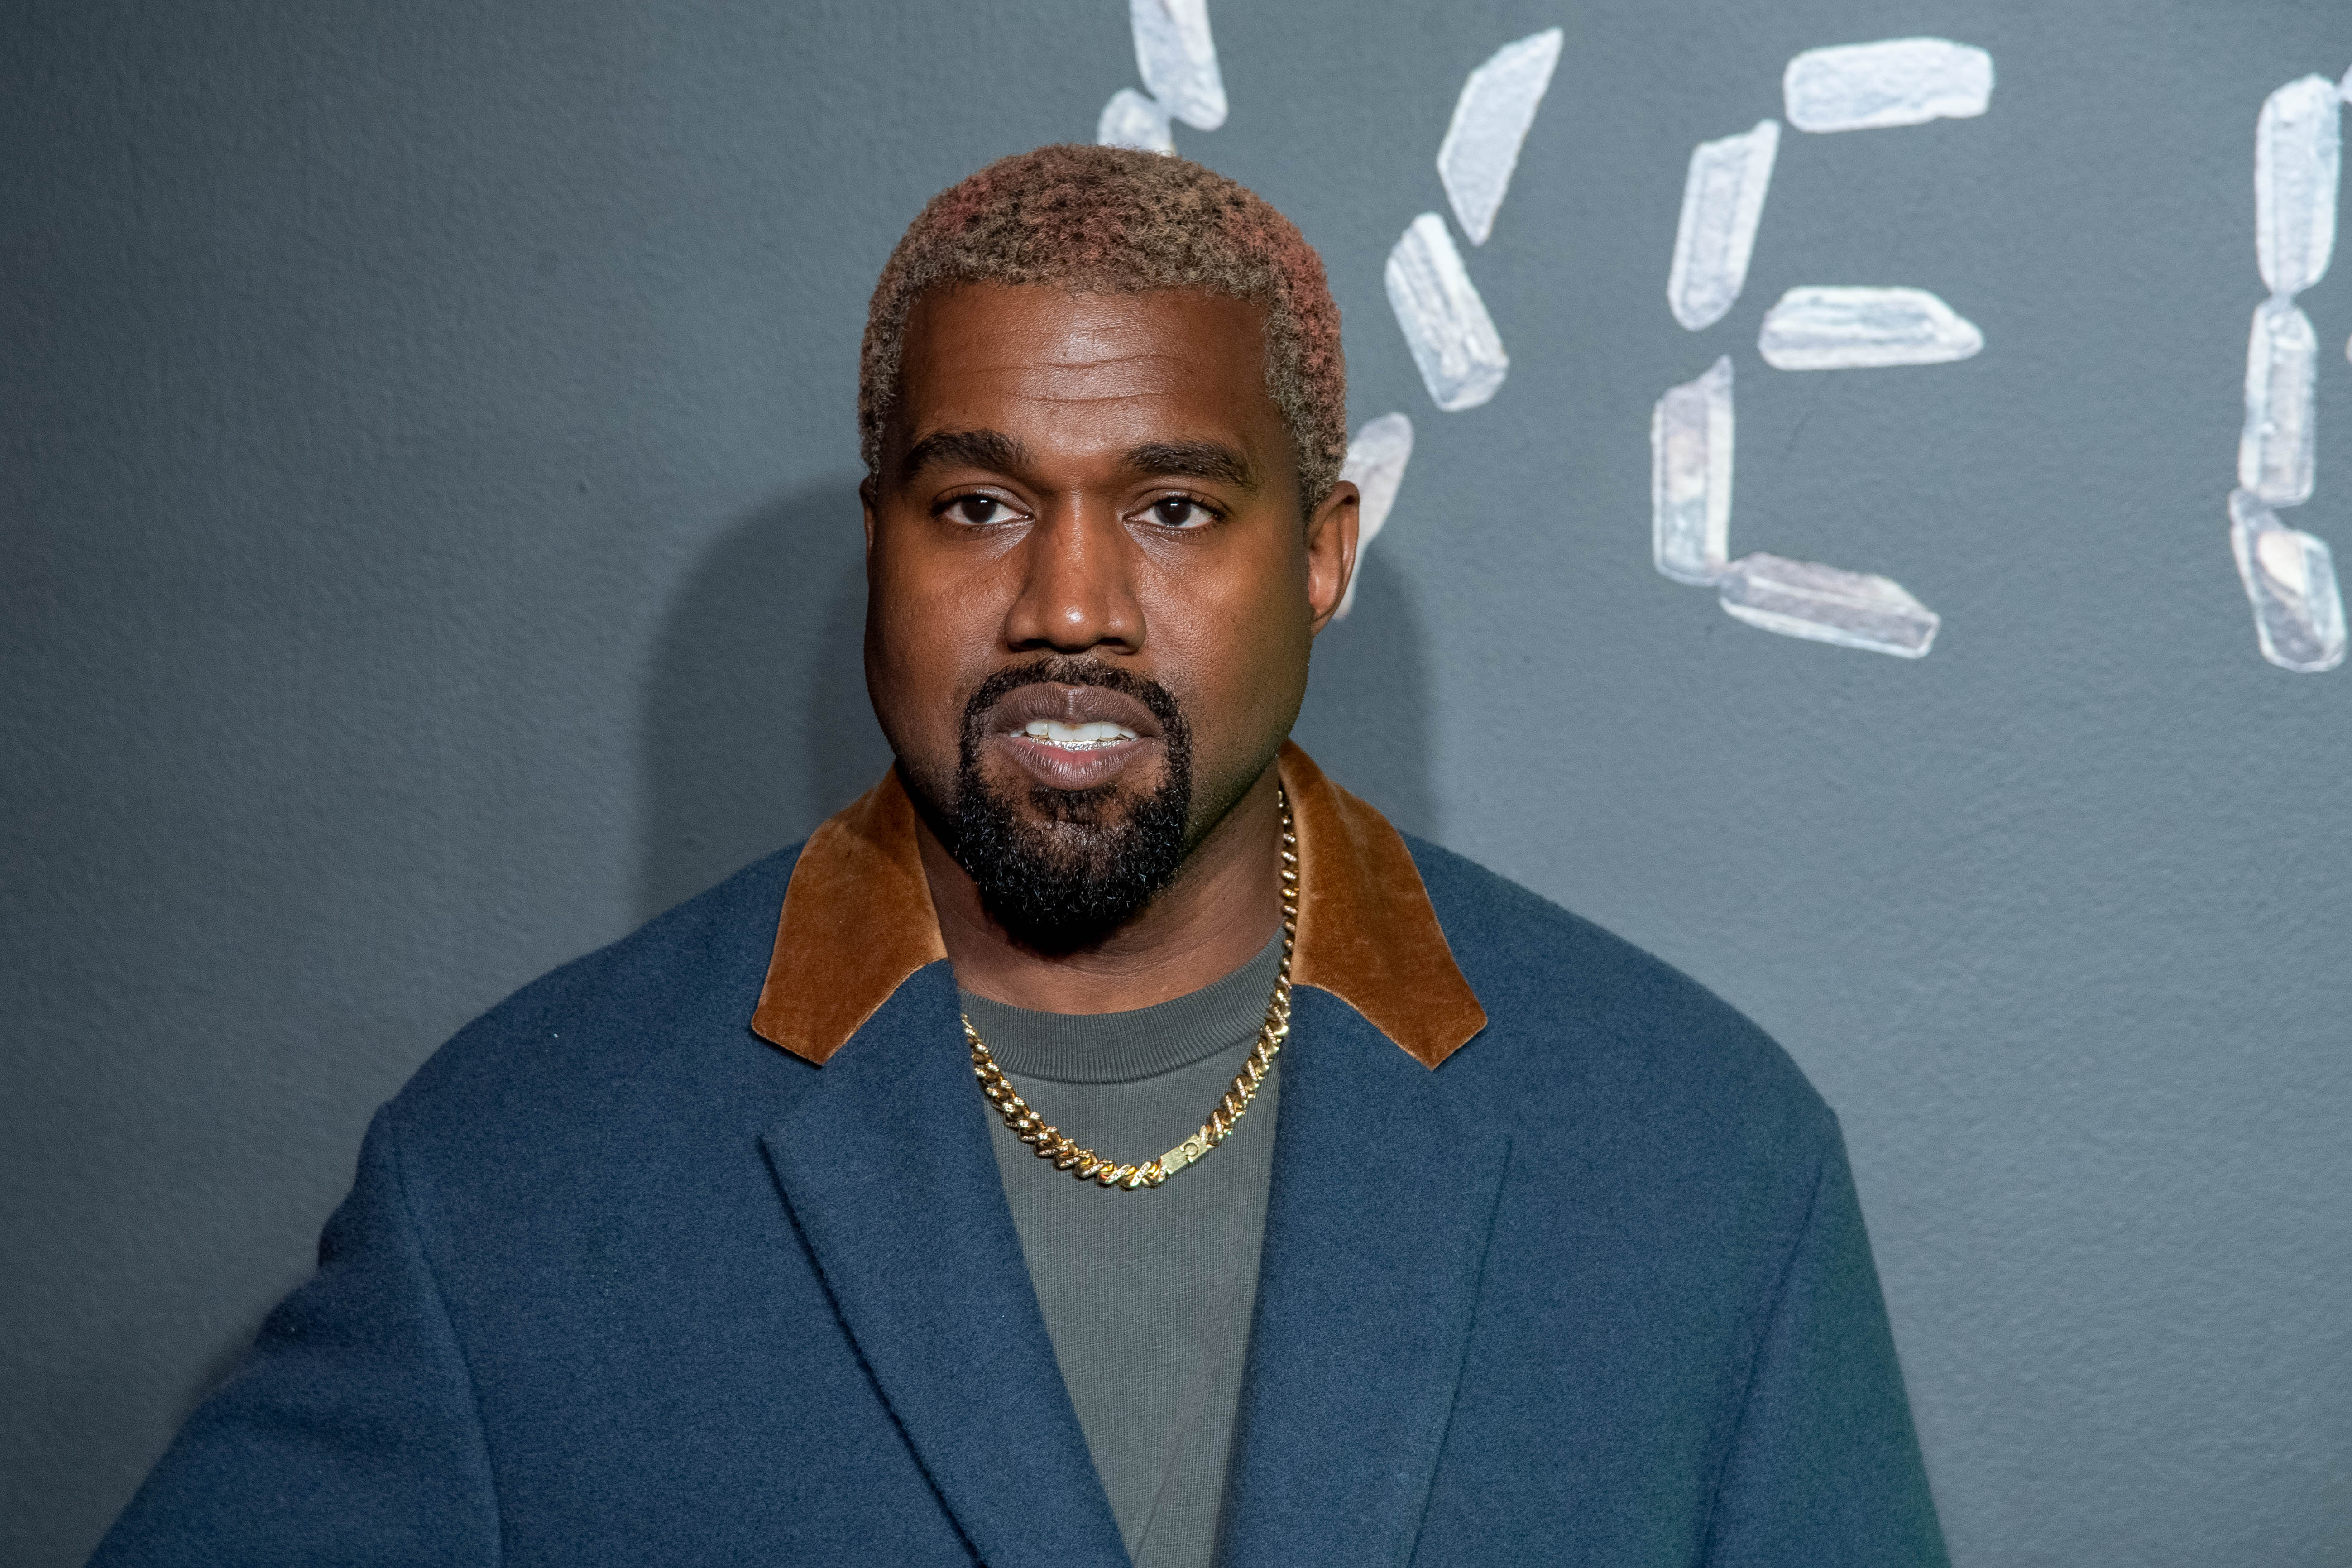 Kanye West Surpasses Drake On Forbes Richest Rappers List